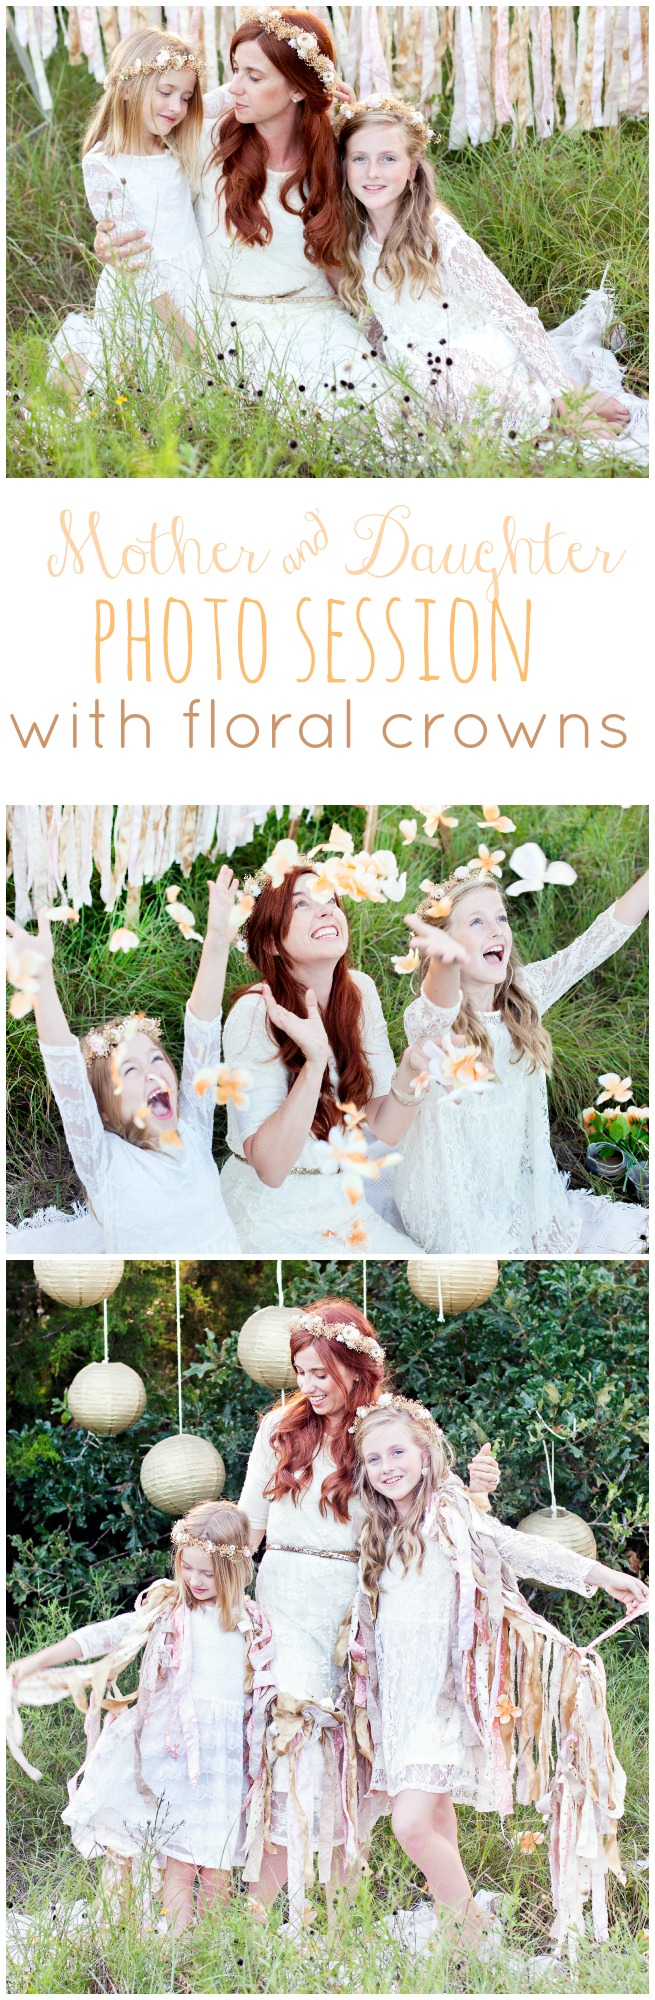 Mother and Daughter photo session with floral crowns